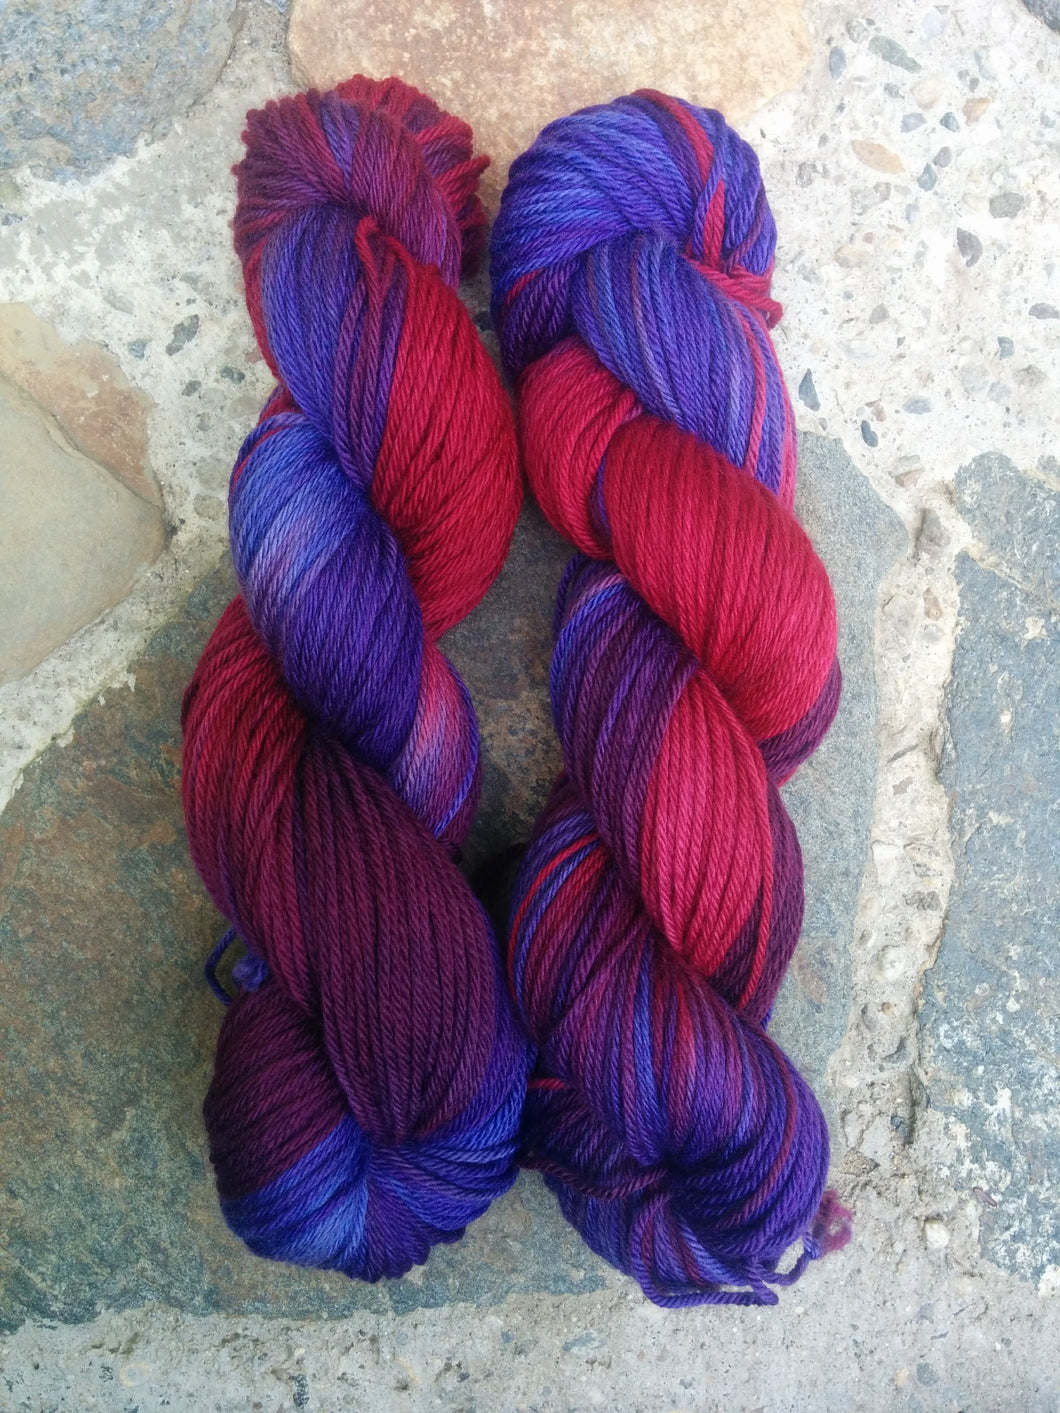 Amethyst & Rubies, Worsted Weight Merino,